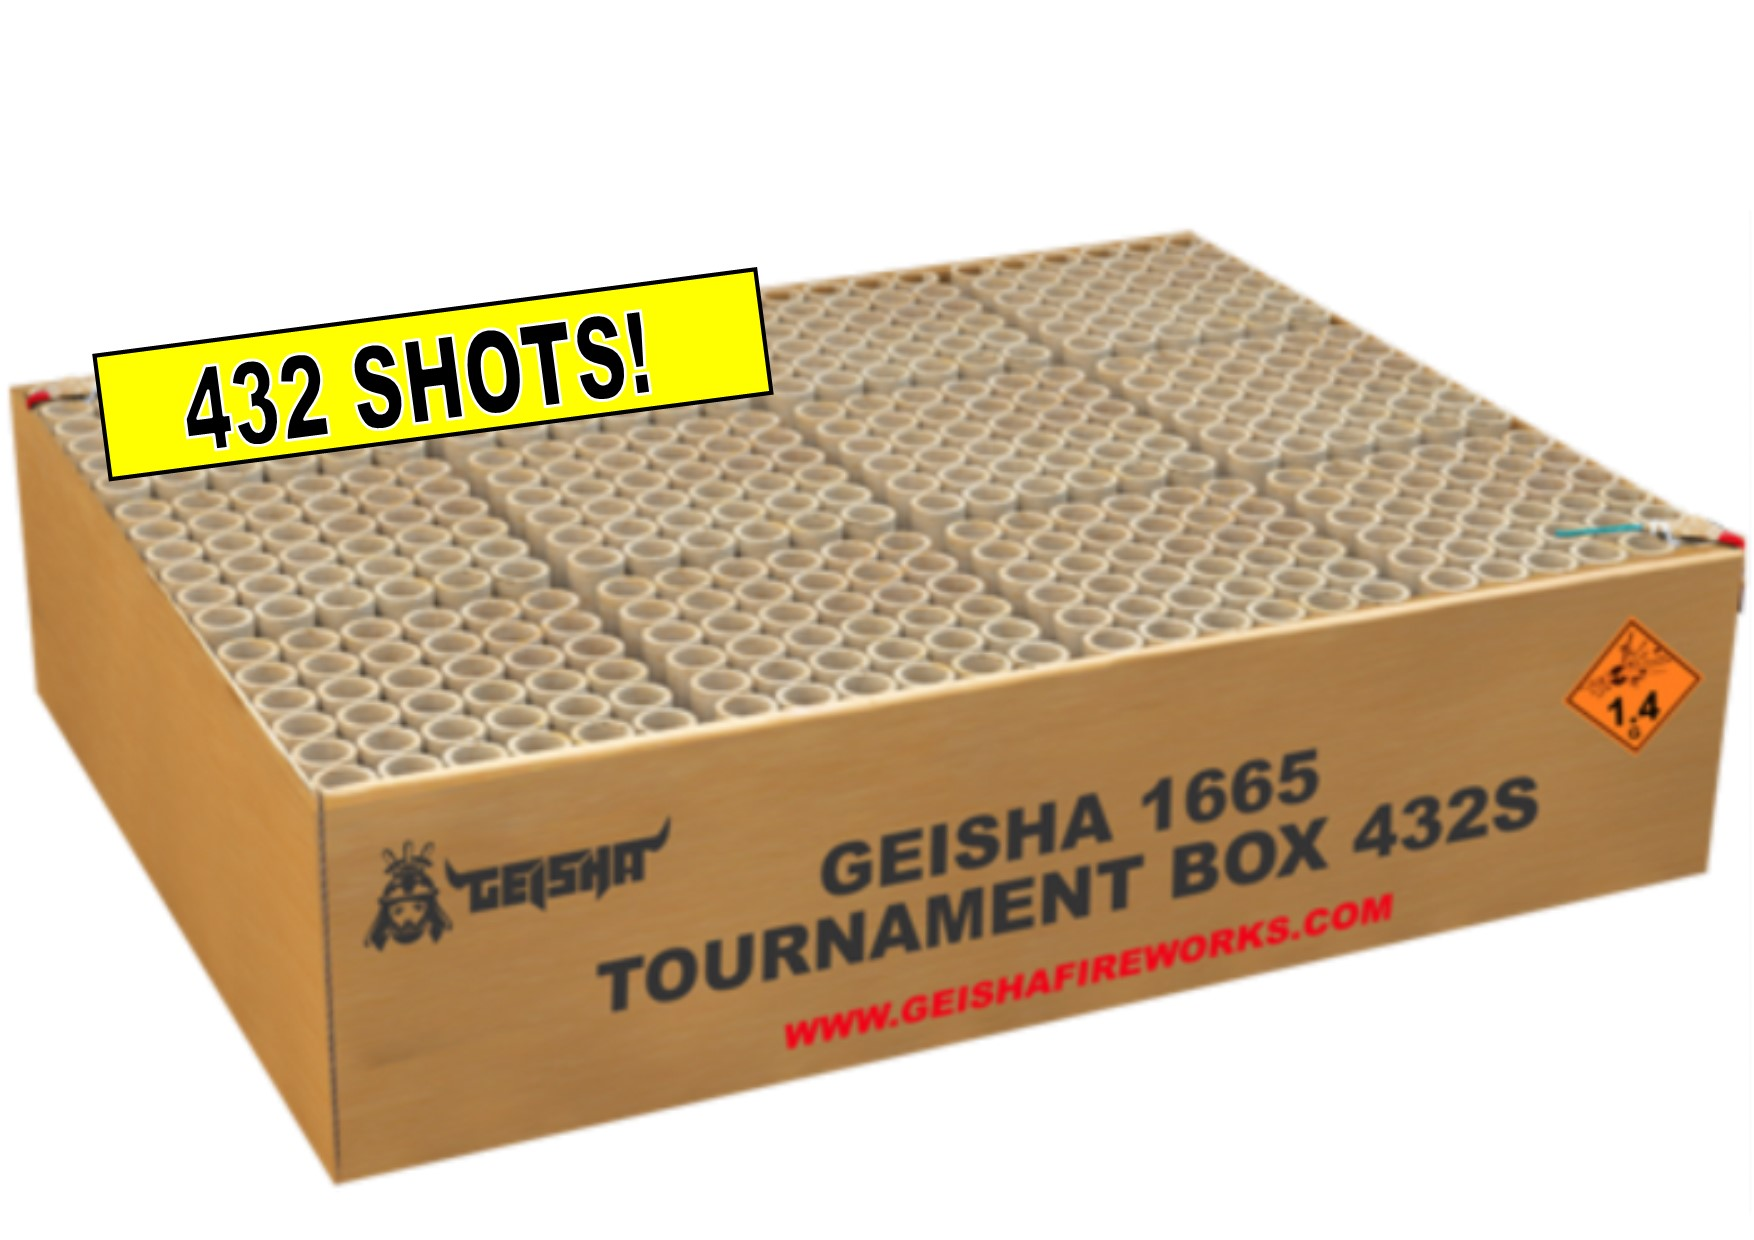 ART. 1665 TOURNAMENT BOX, 432 SHOTS